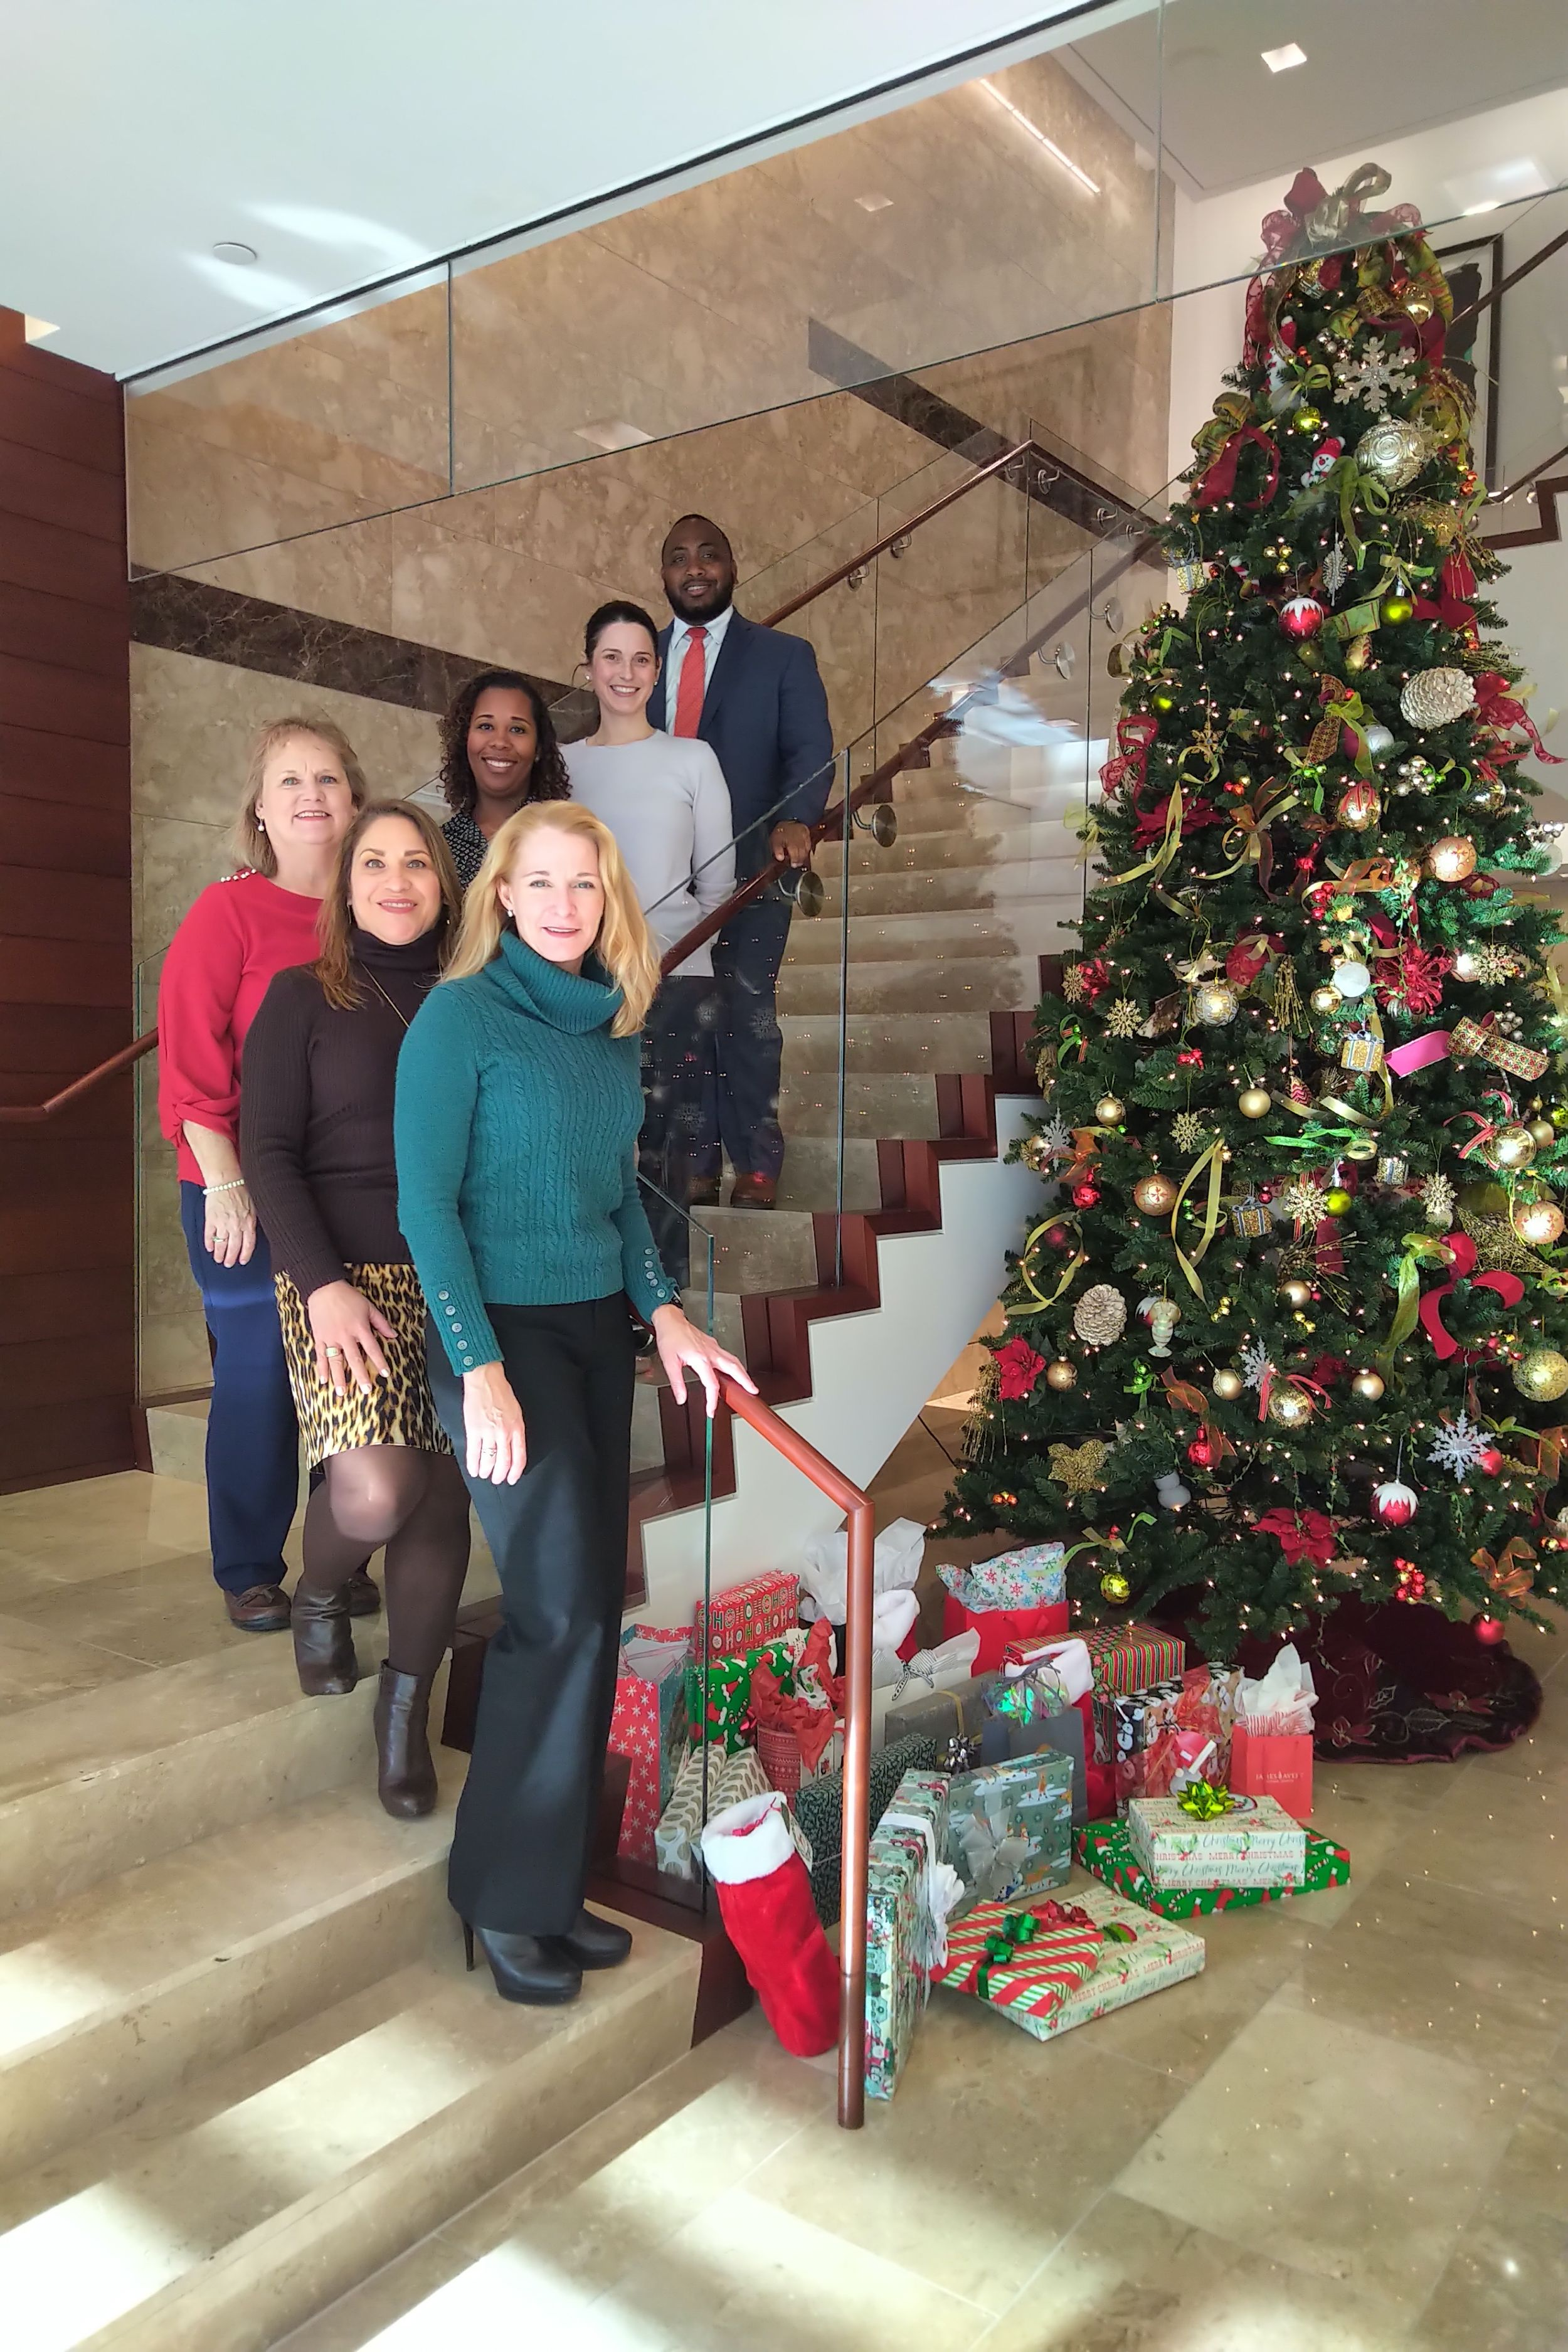 Attorneys from Baker Hostetler gather on the stairs in front of their presents.